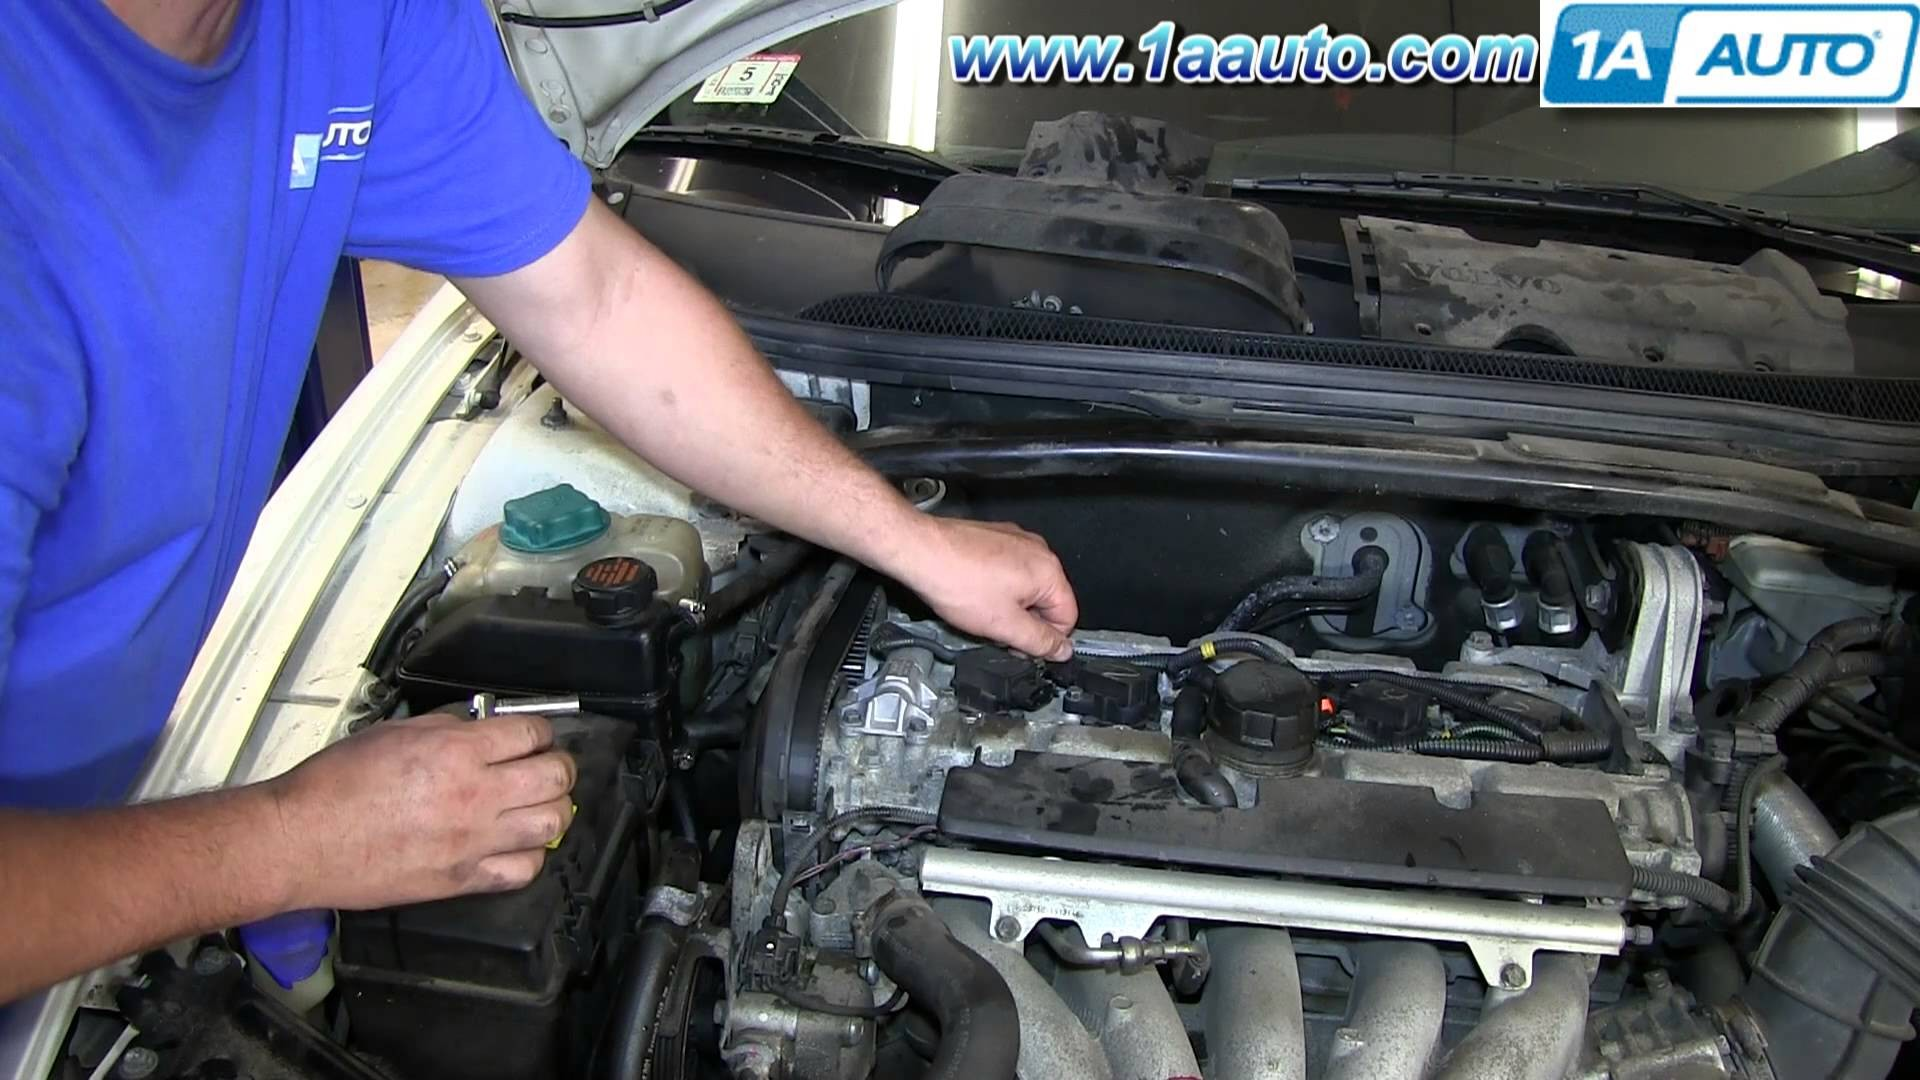 2001 Volvo S80 Engine Diagram Wiring 2000 S70 How To Install Replace Ignition Coil 1999 2007 V70